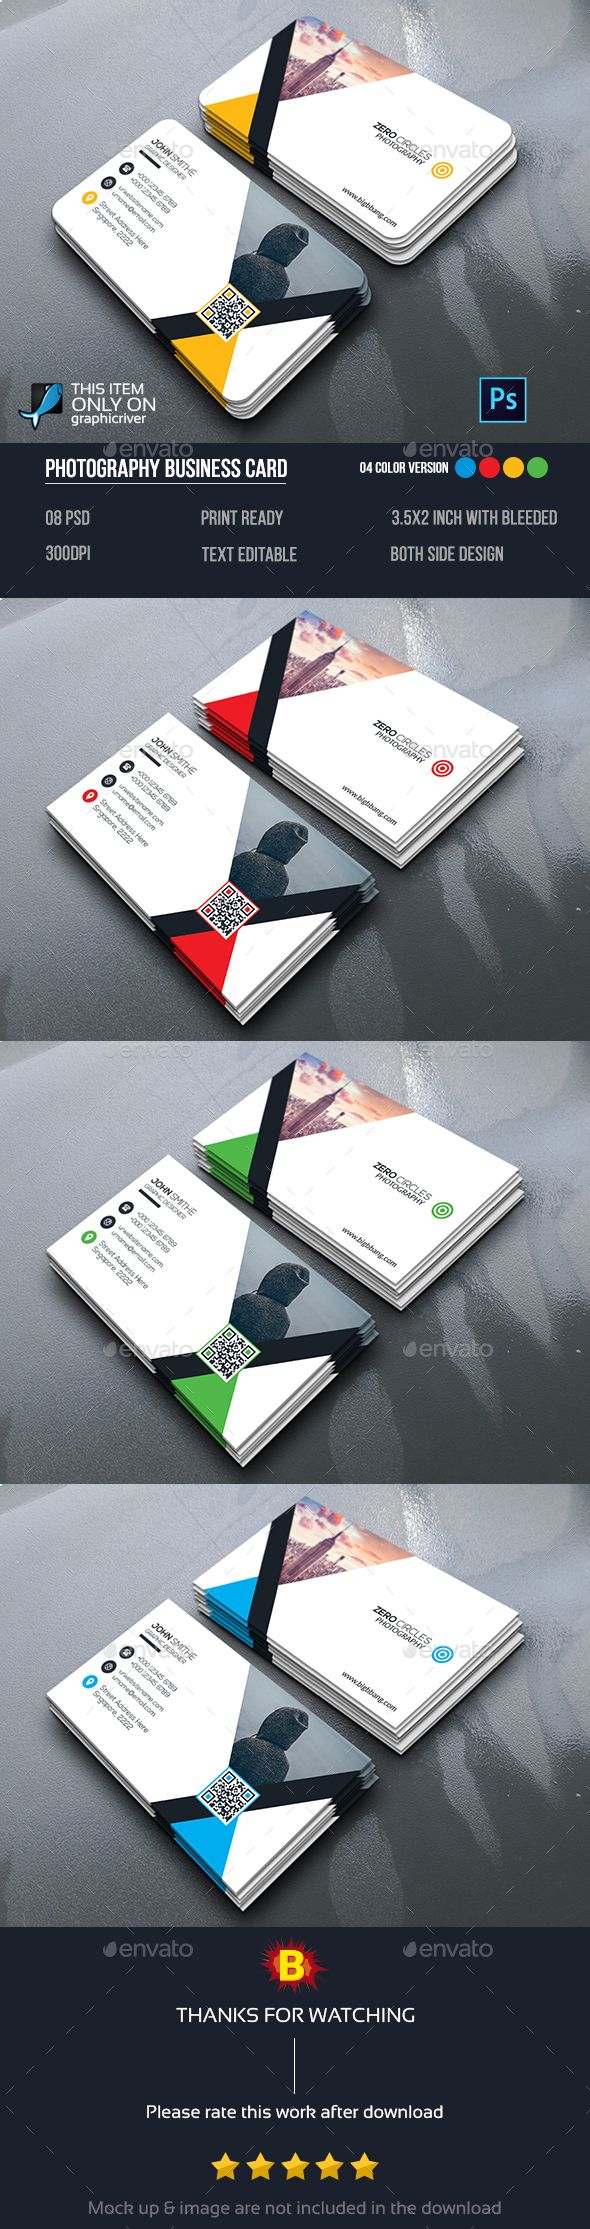 The 165 best photography business card images on pinterest mega corporate business card reheart Image collections